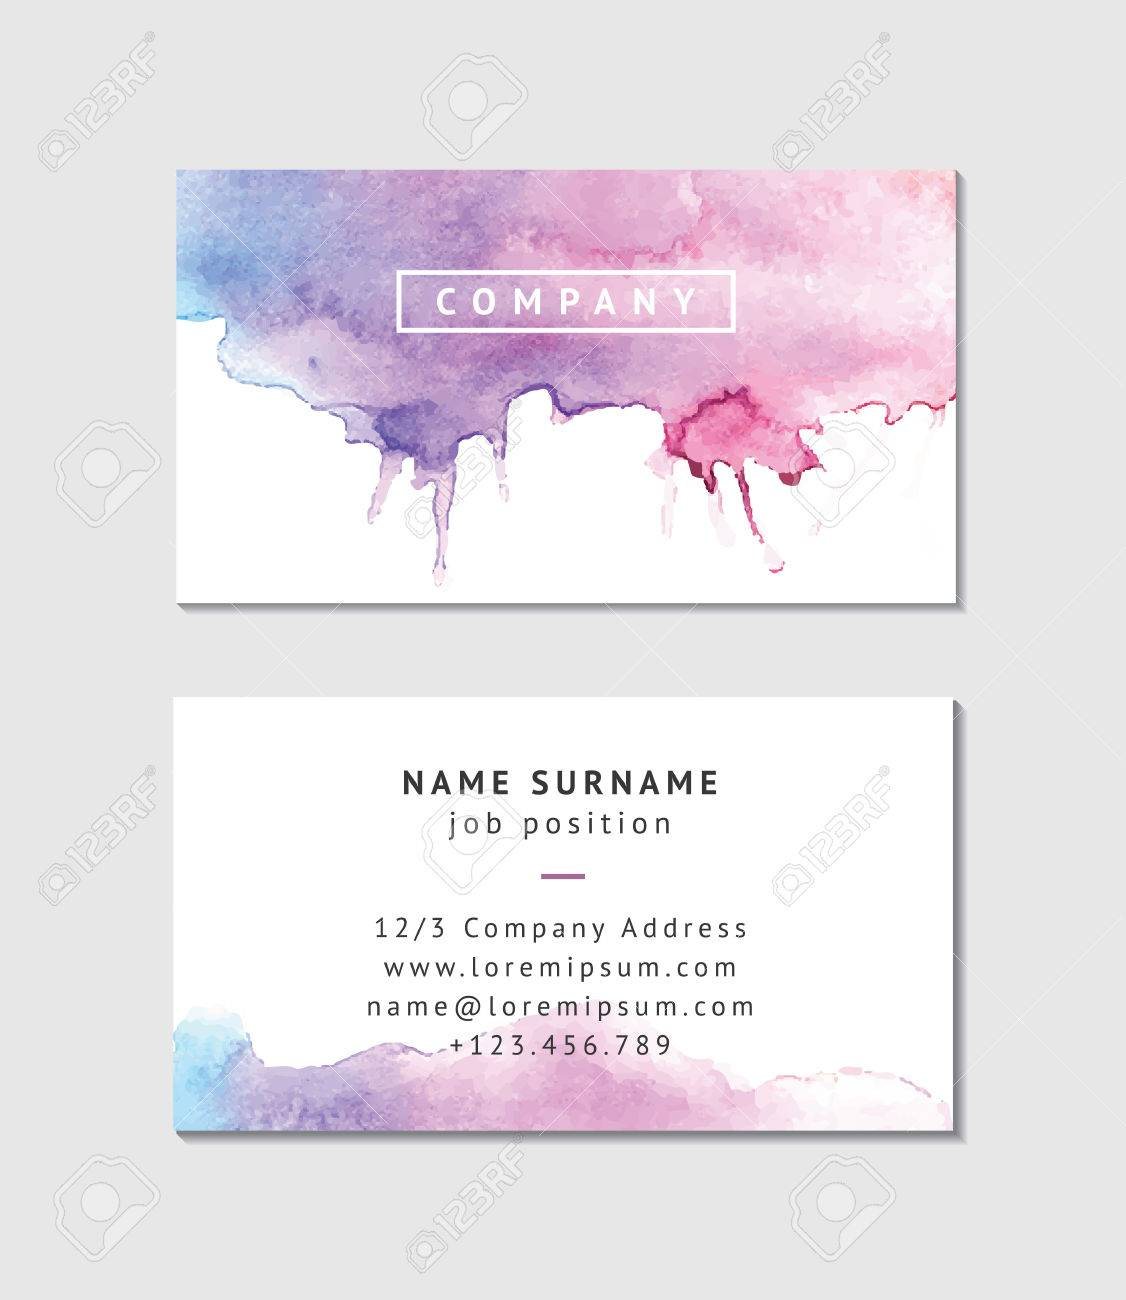 Watercolor Business Card Template Royalty Free Cliparts Vectors